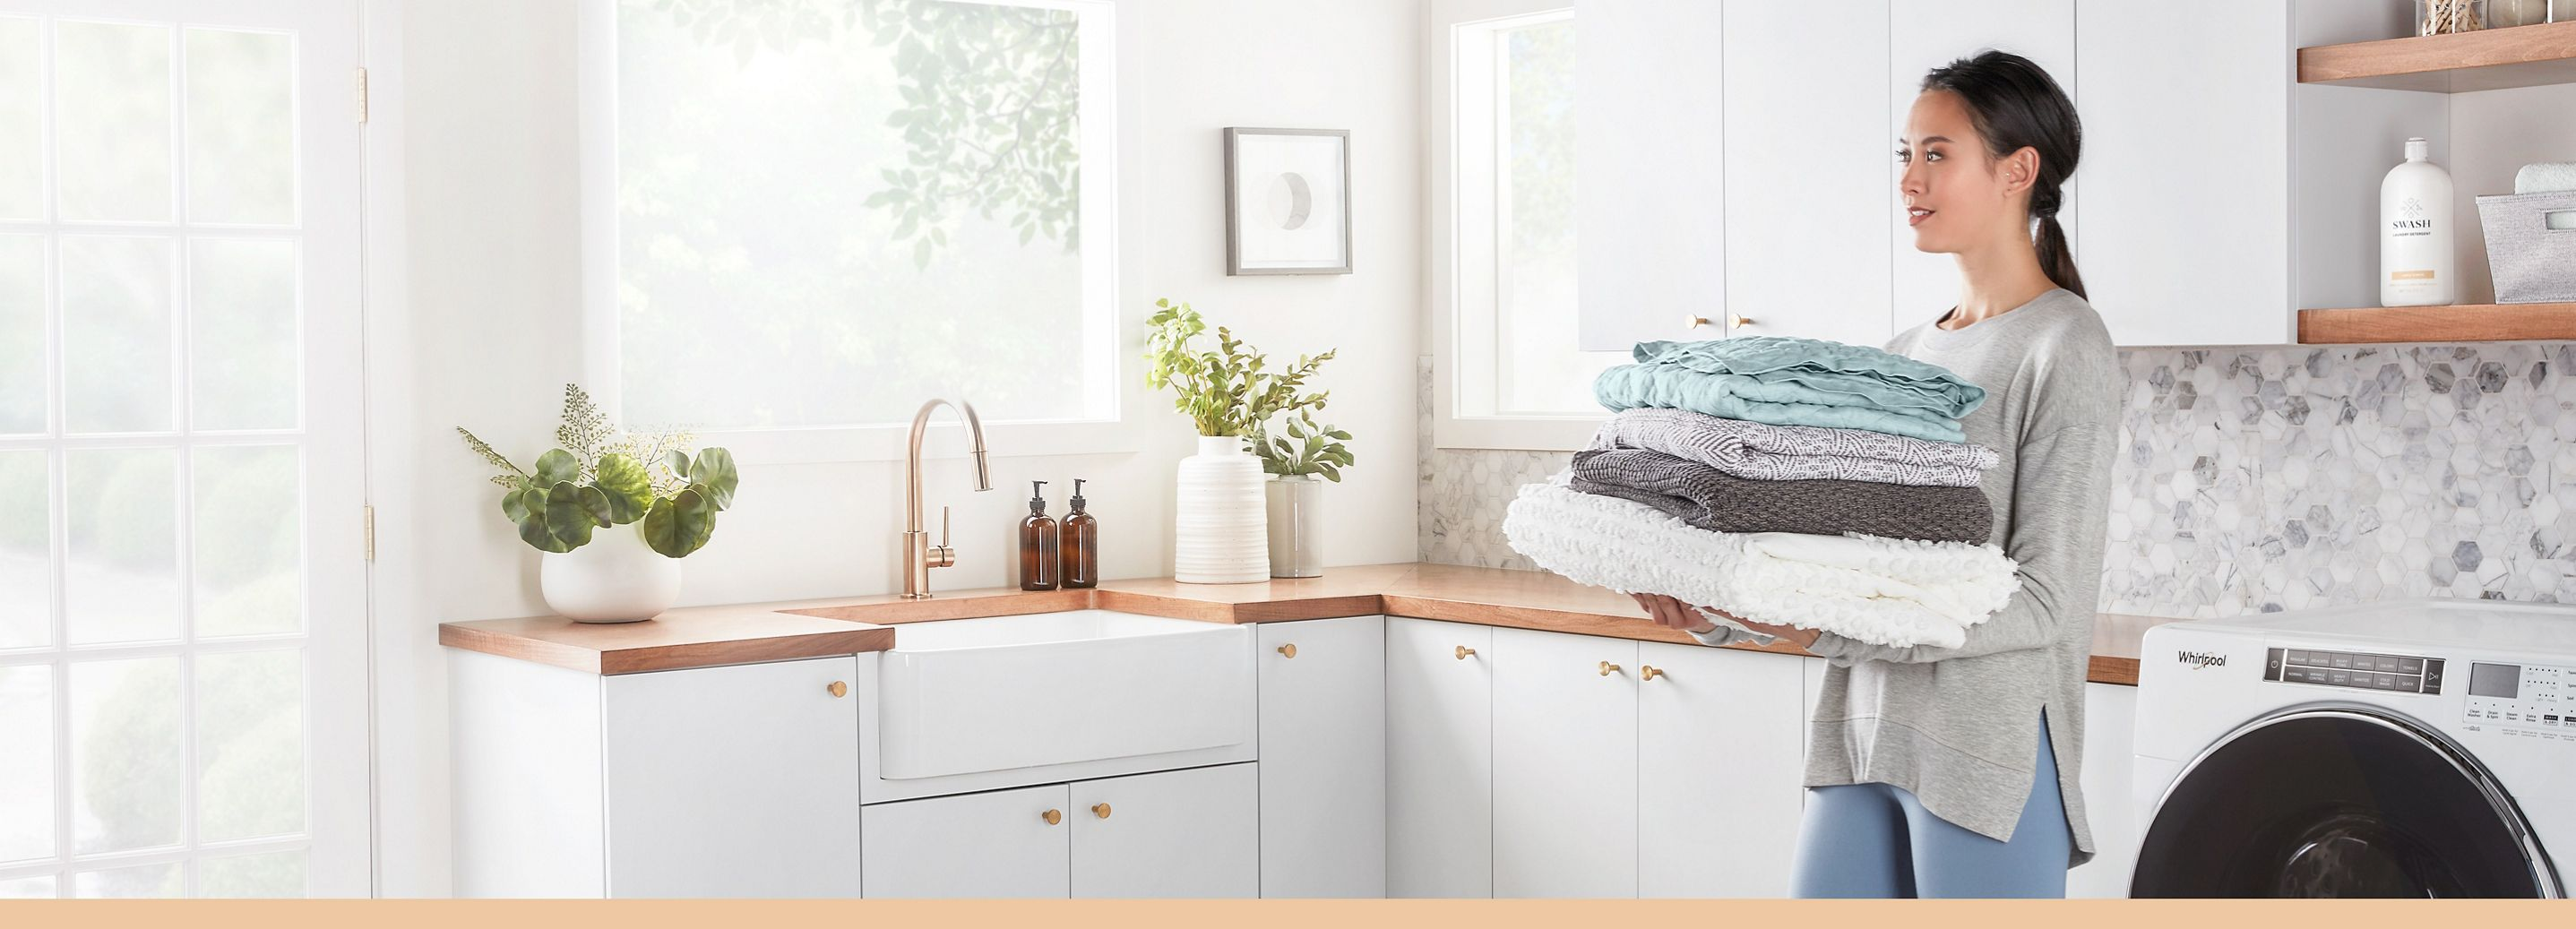 Woman in her laundry room carrying a pile of clean folded laundry